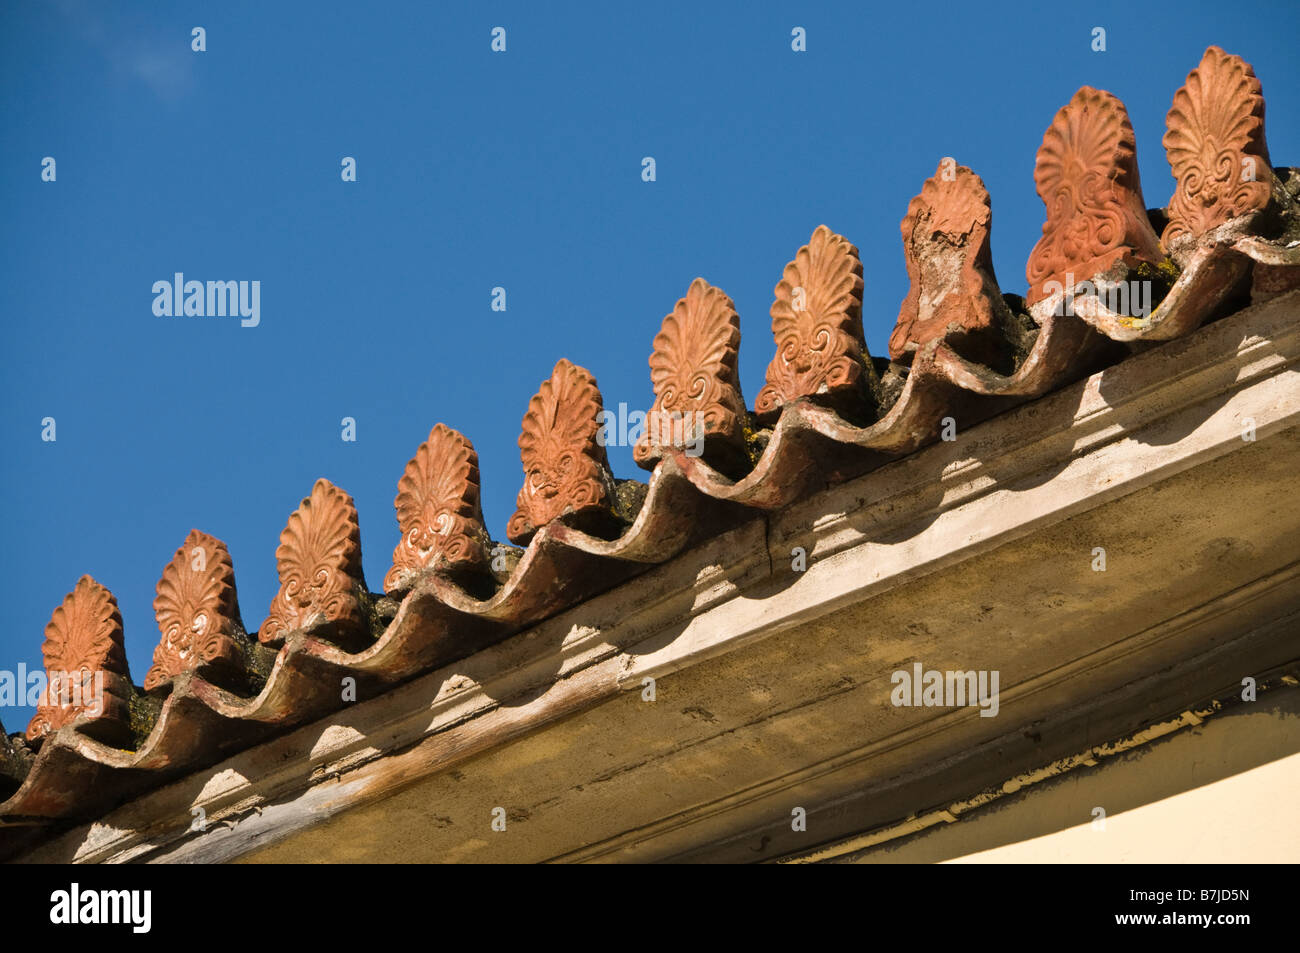 Terracotta Antefixes Or Antefixae On The Roofline Of A Neo